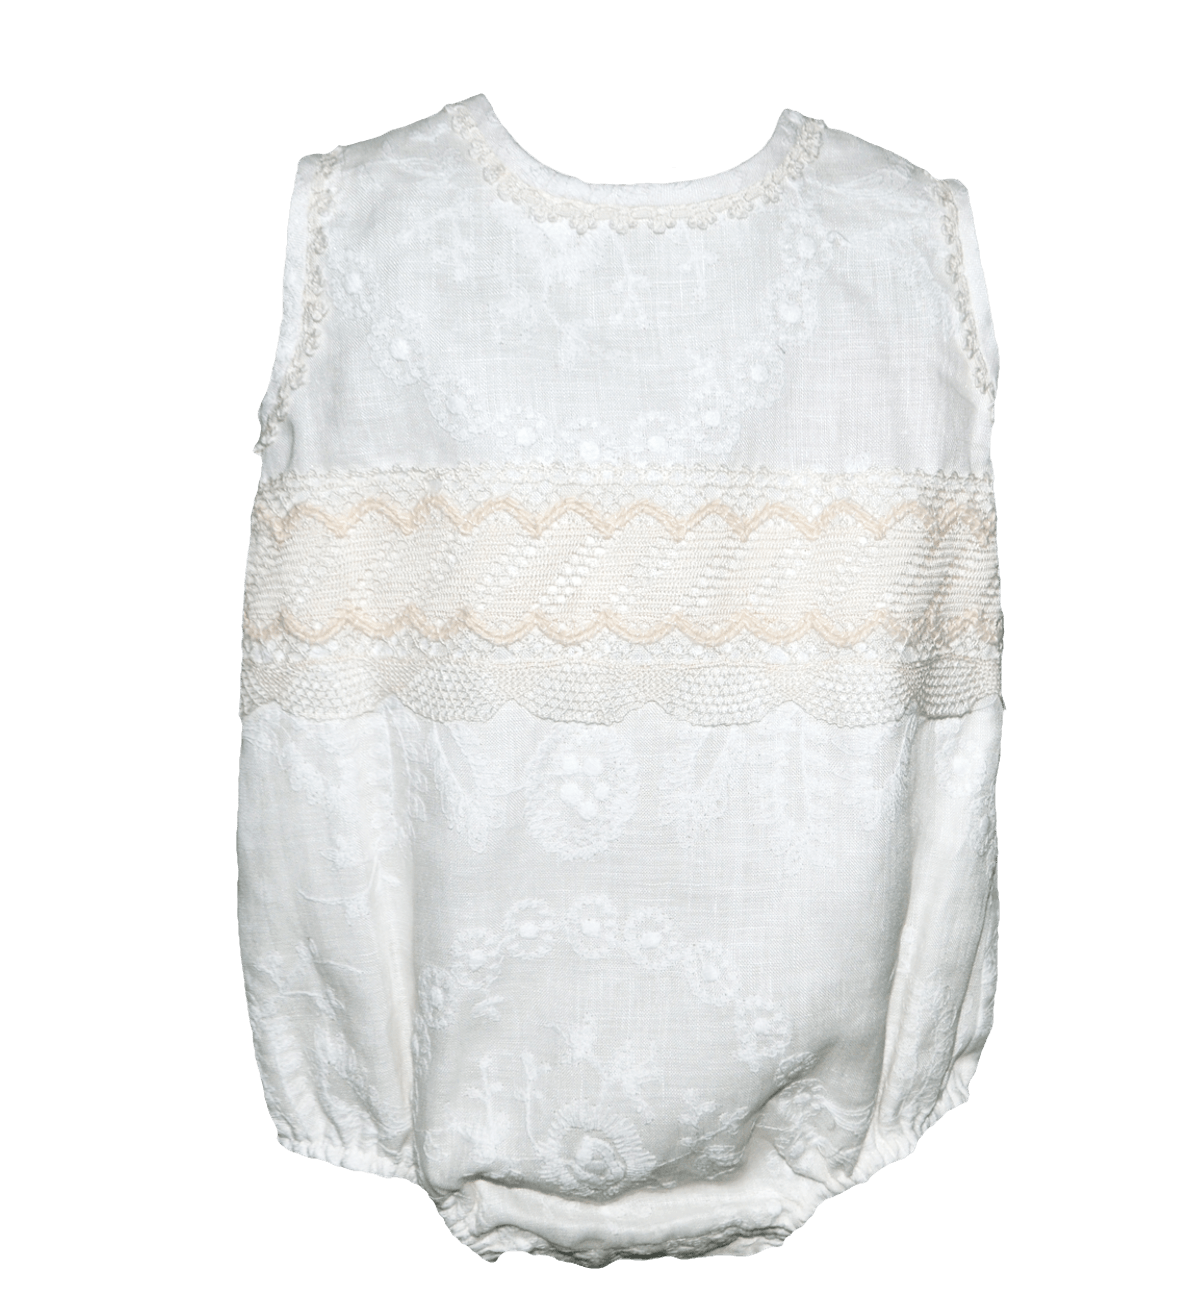 Spanish baby clothes | baby Christening romper | Ivory Christening romper (baby boy) |babymaC  - 1